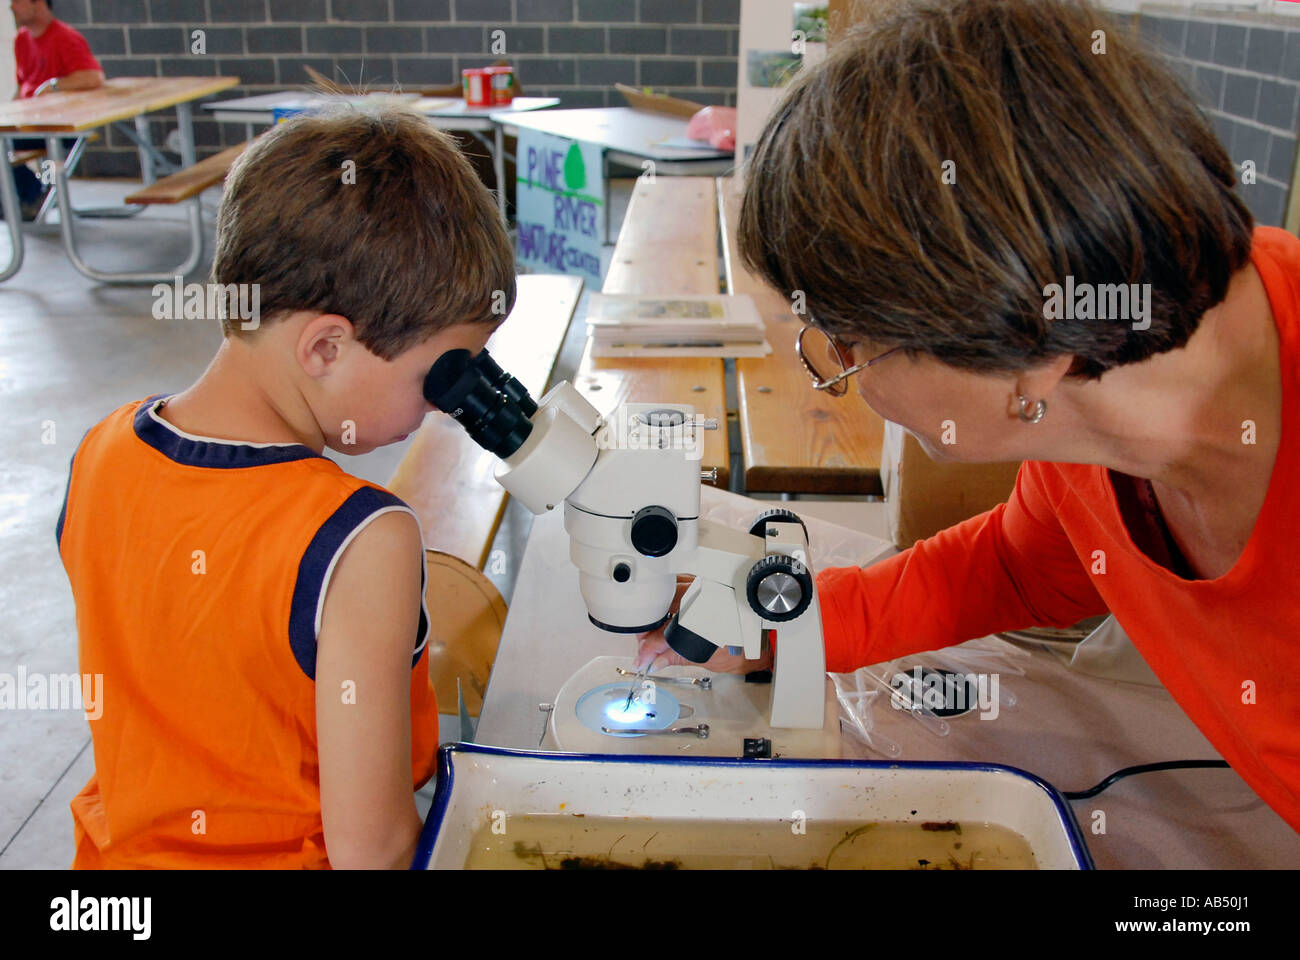 Children look through a microscope at the life in a pond at an Earth Day Festival - Stock Image